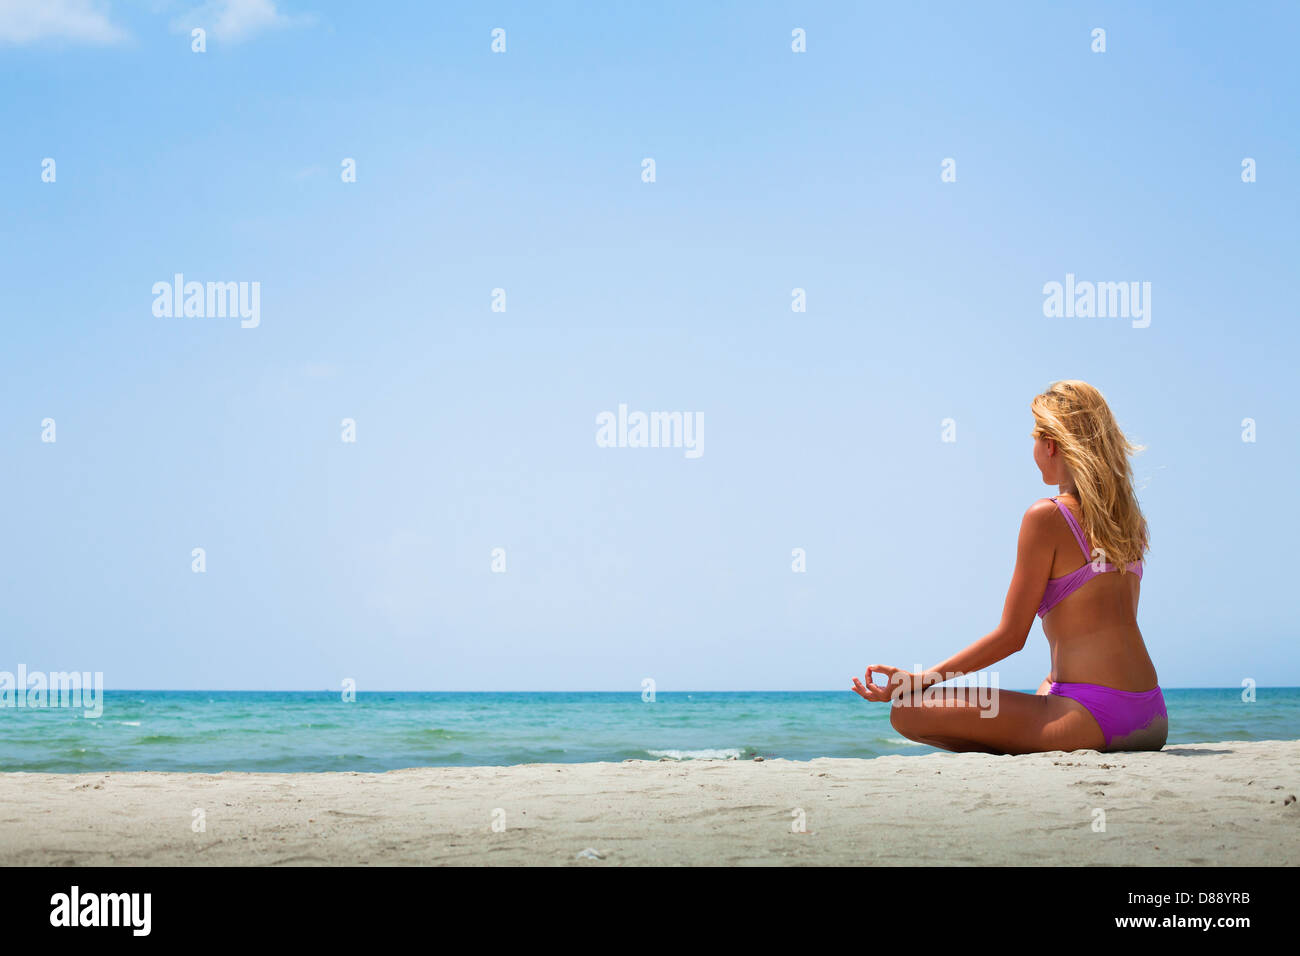 yoga in sunny day on the beach - Stock Image